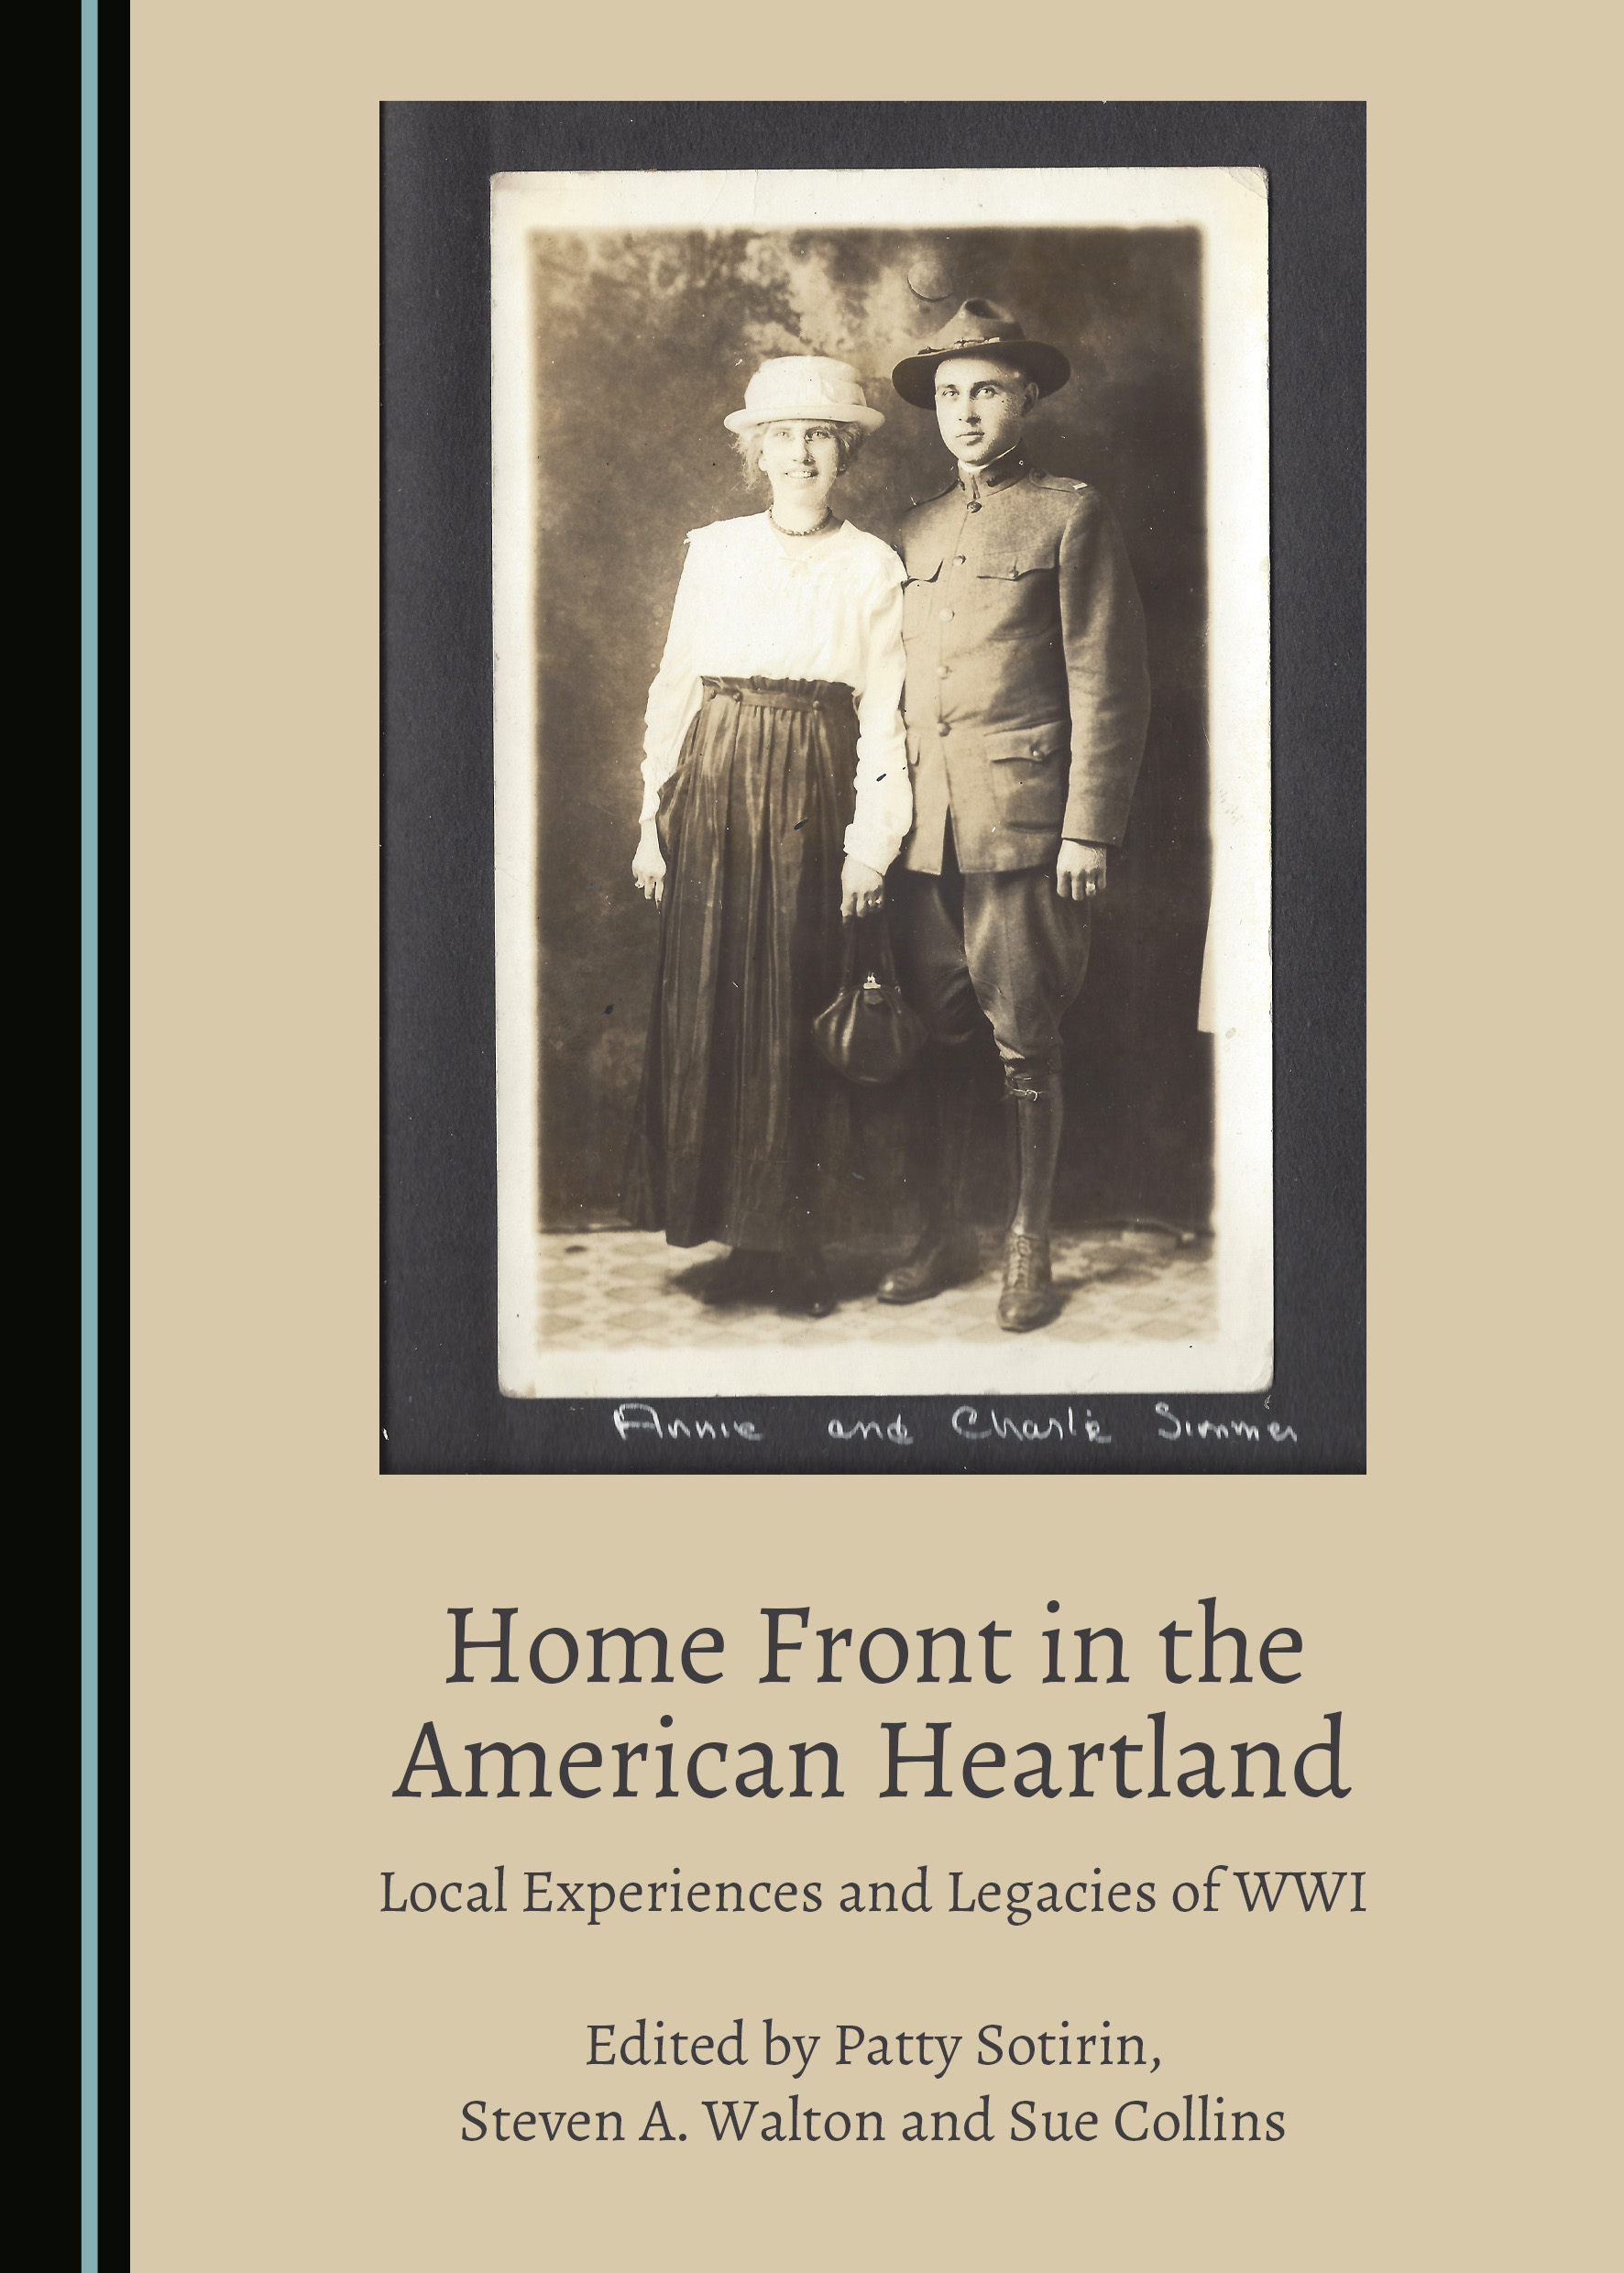 Home Front in the American Heartland: Local Experiences and Legacies of WWI